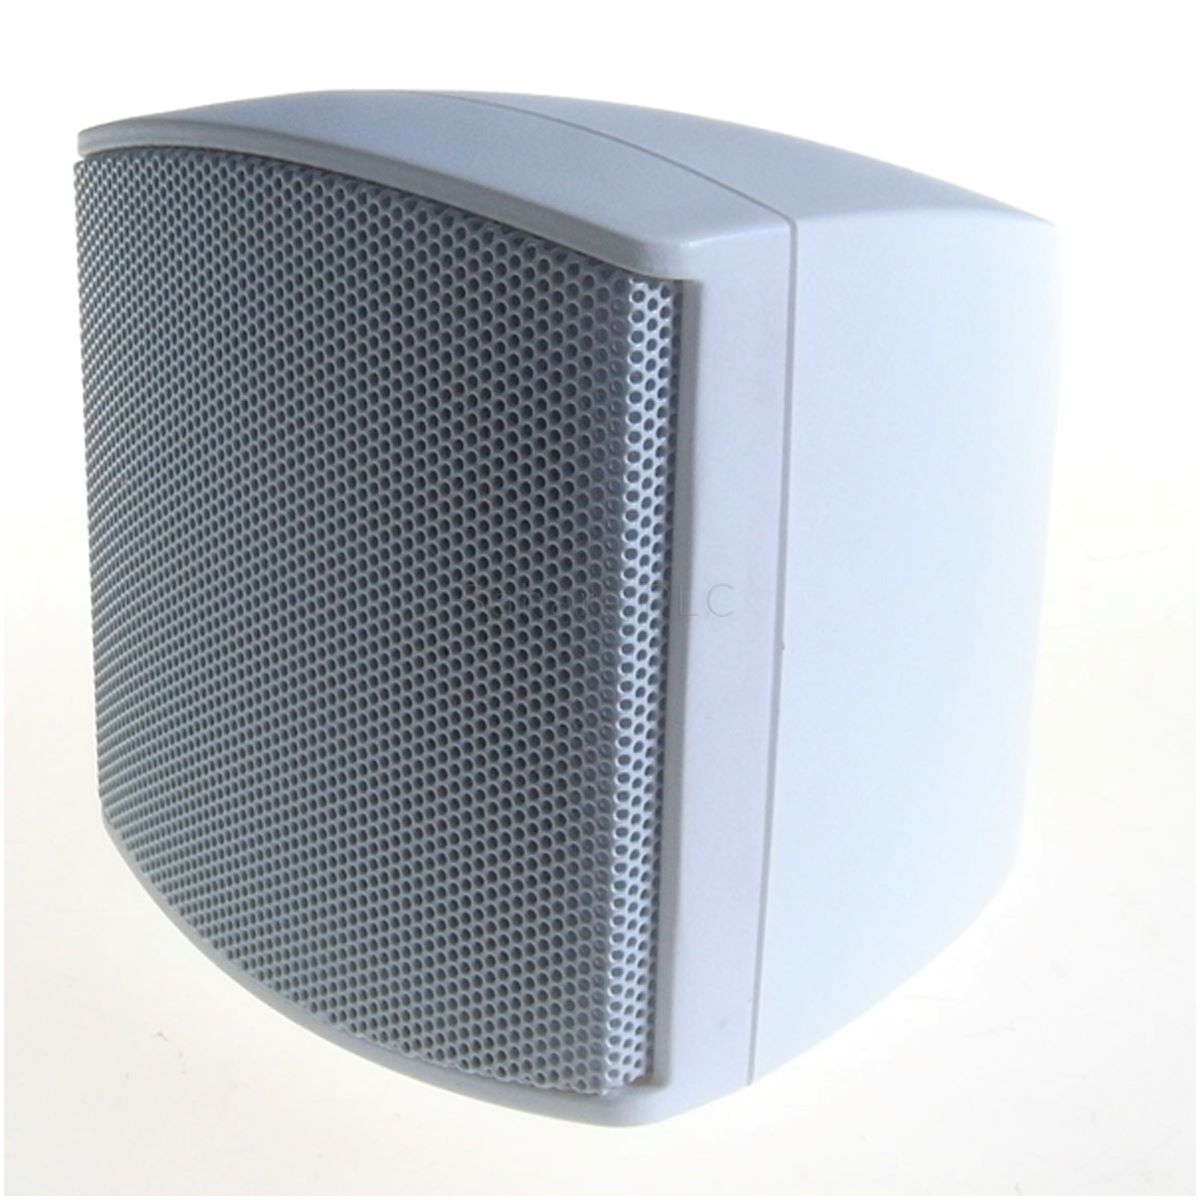 Sahara Mini Indoor Outdoor Speakers